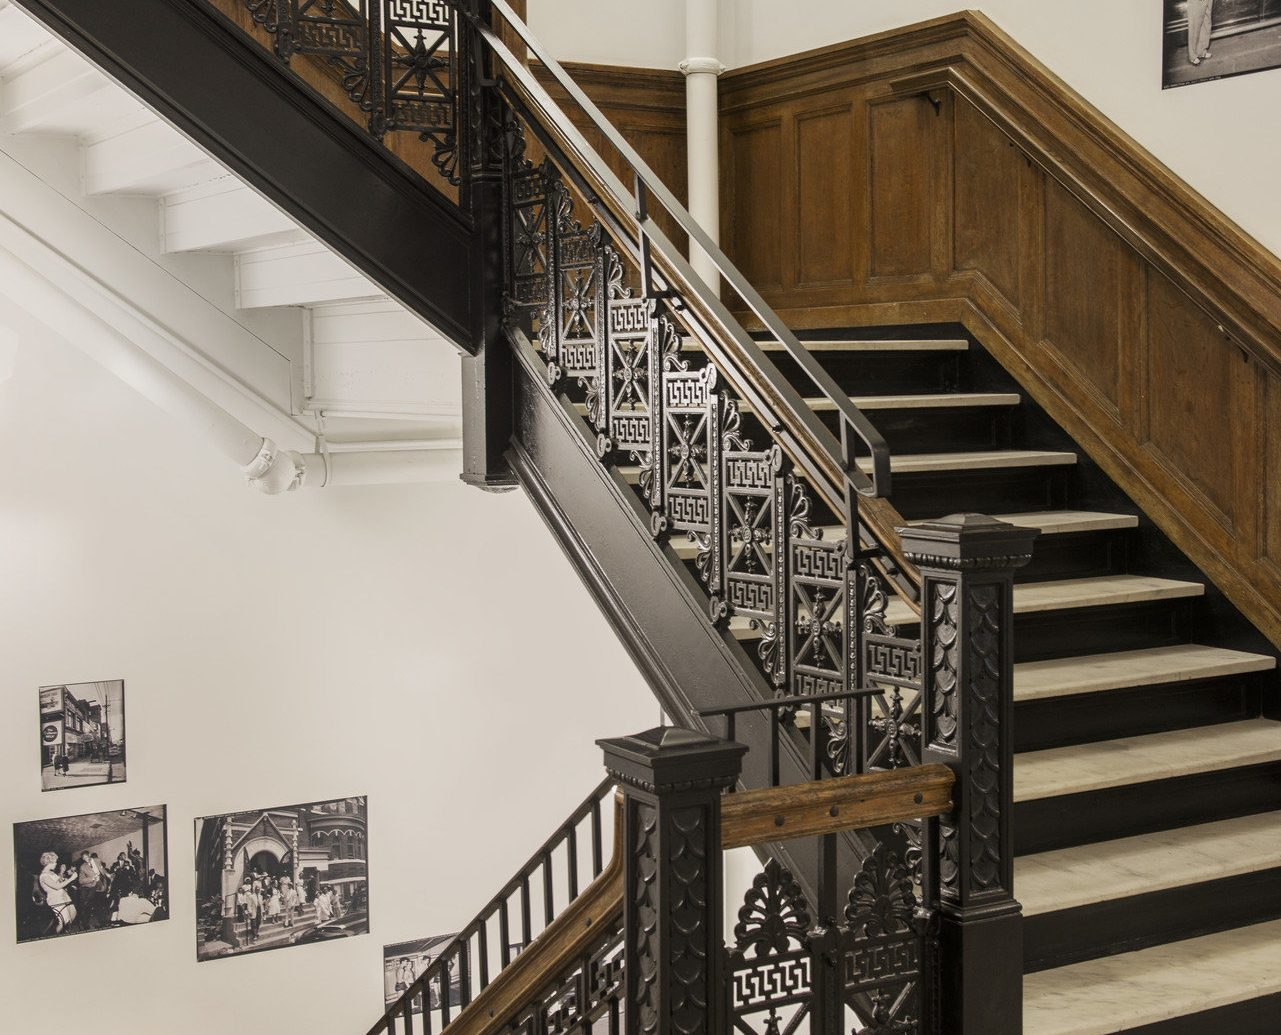 Boutique Hotels interior staircase stairs handrail Architecture iron baluster art interior design wood step